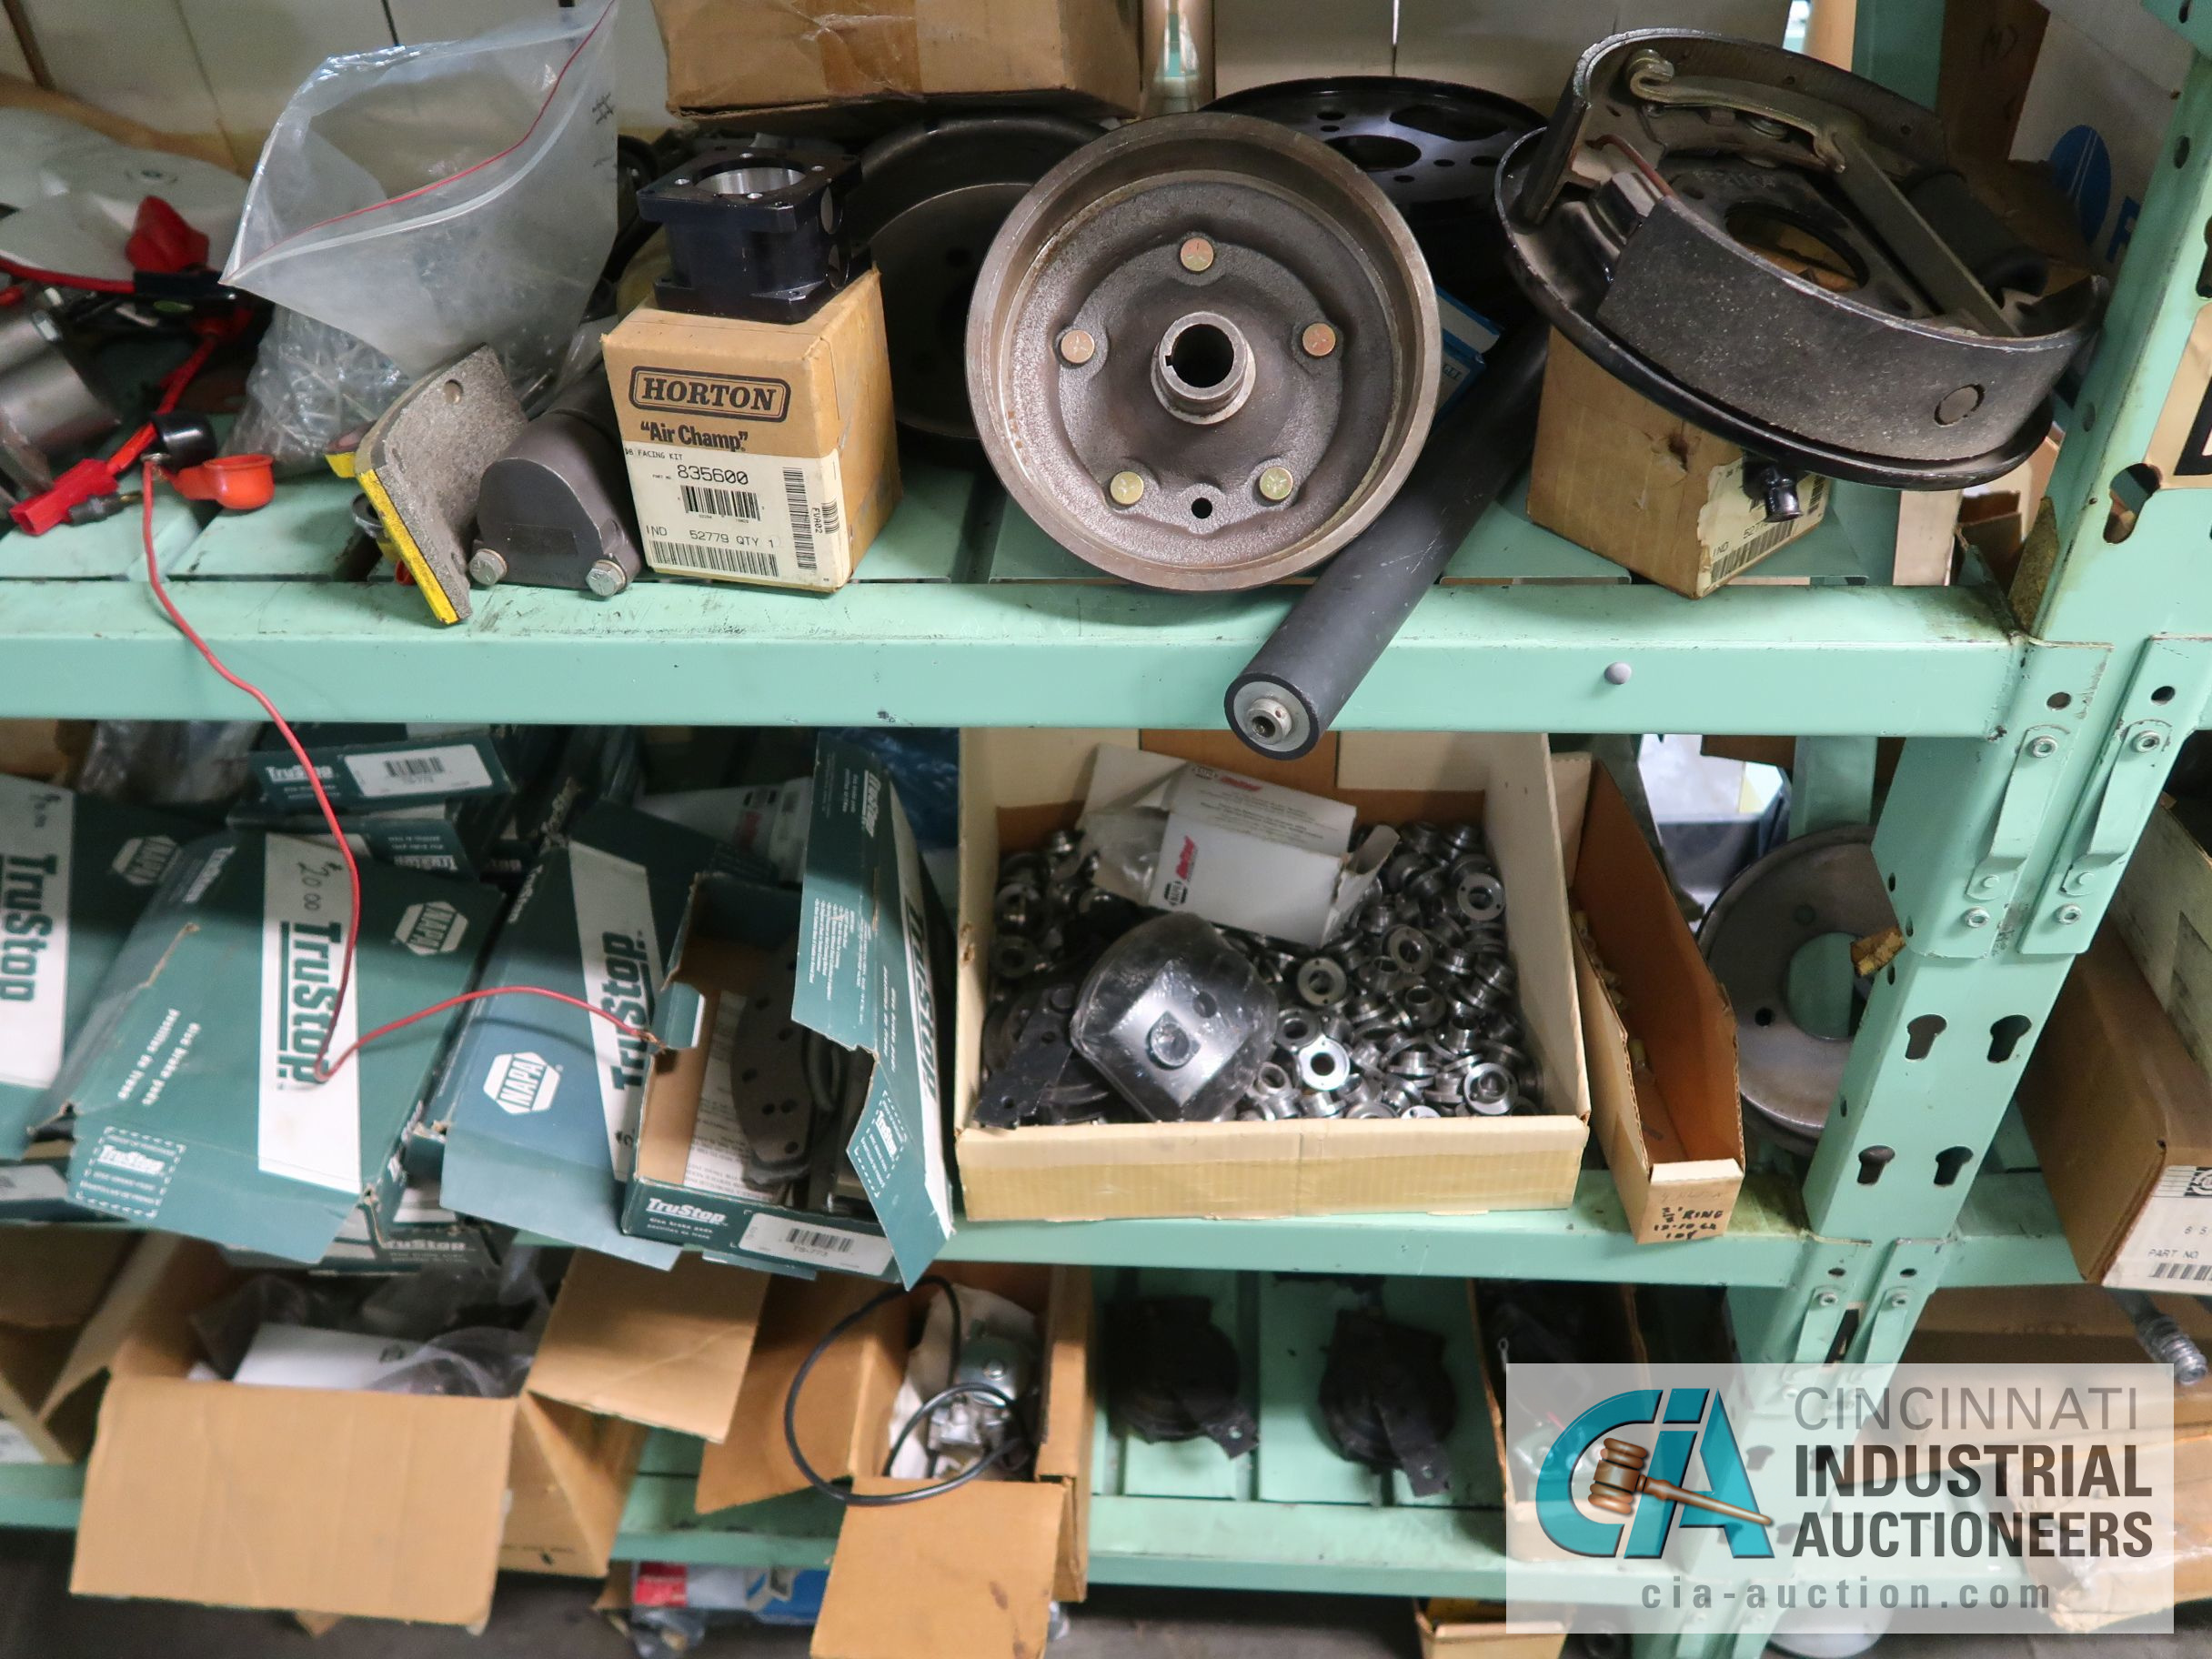 CONTENTS OF (6) RACKS INCLUDING MISCELLANEOUS AUTOMOTIVE PARTS, BREAKS, ROTORS, GASKETS, MOUNTING - Image 35 of 38